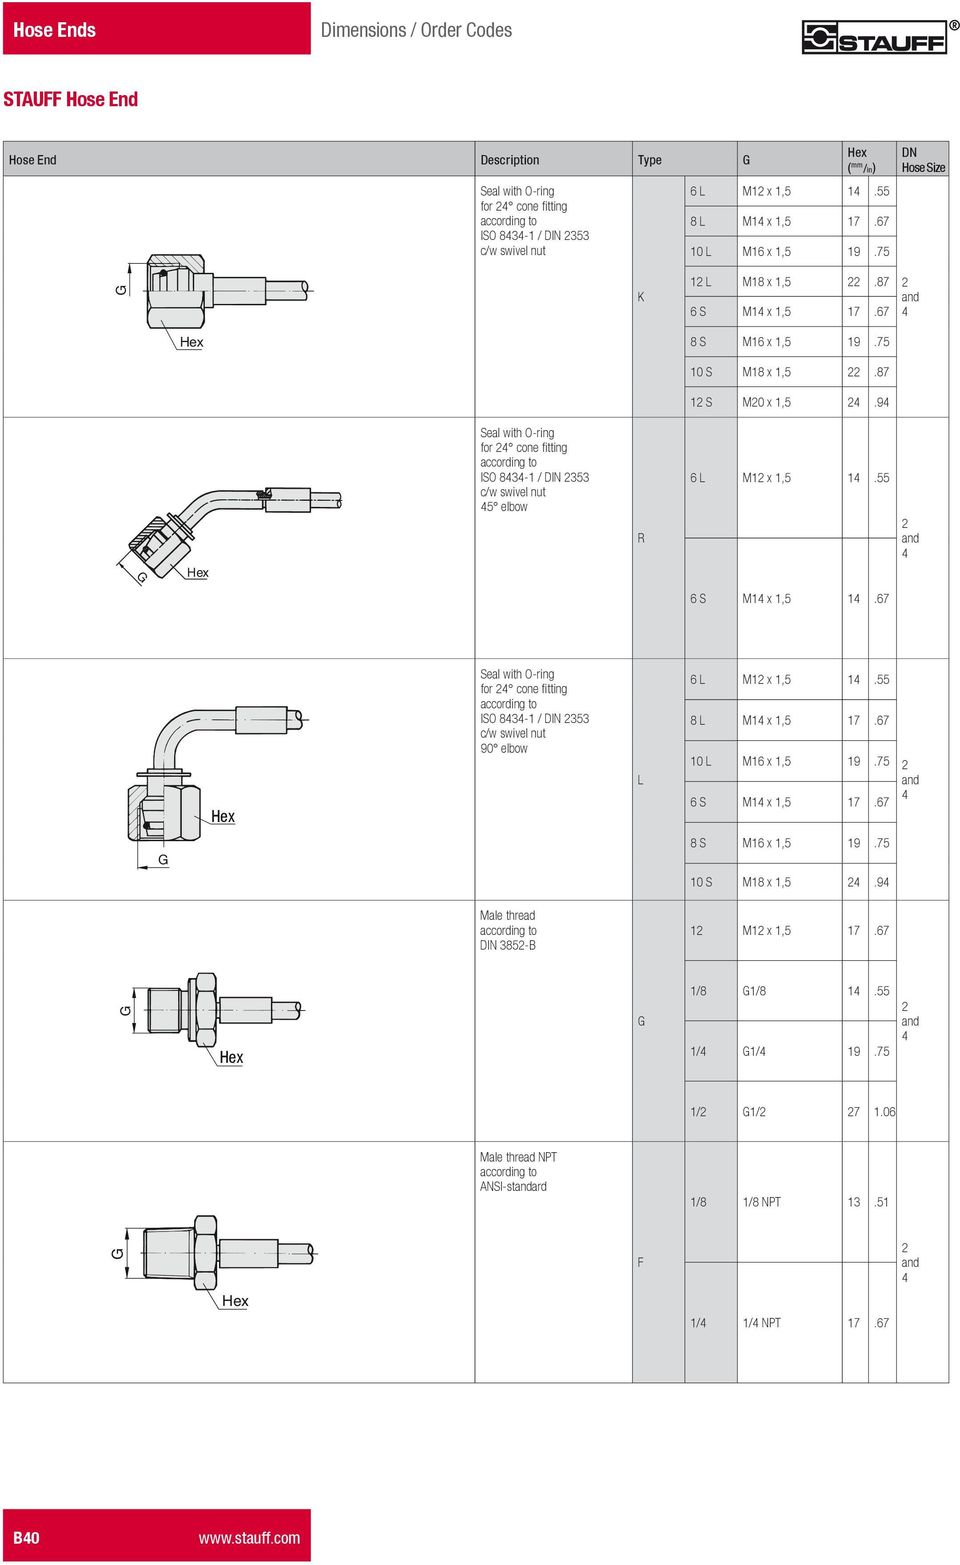 9 Seal with O-ring for cone fitting ISO 83-1 / DIN 353 c/w swivel nut 5 elbow R 6 M1 x 1,5 1.55 6 S M1 x 1,5 1.